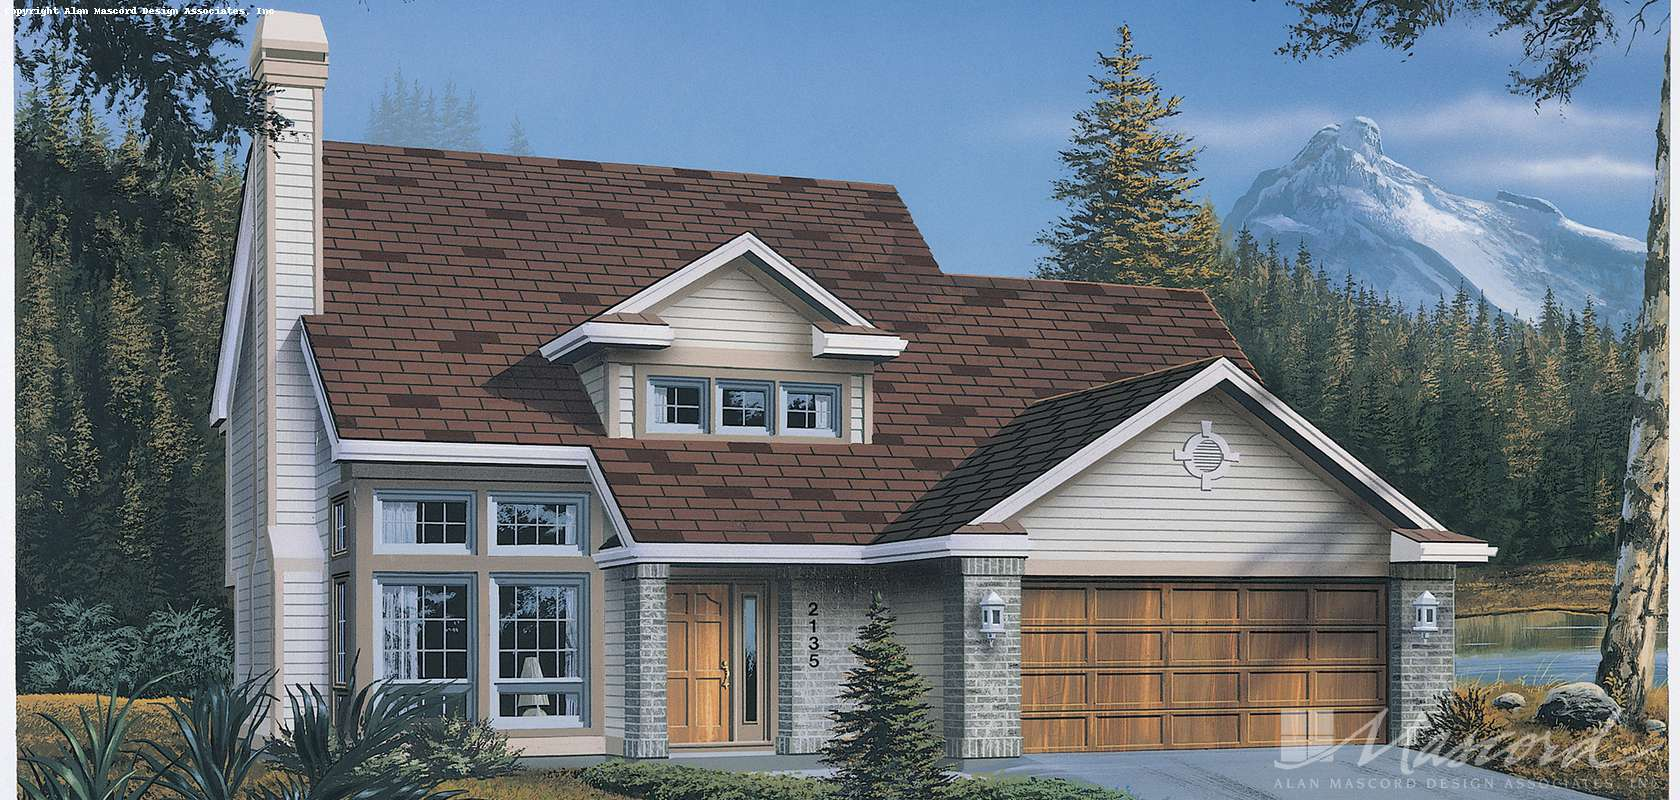 Mascord House Plan B2135: The Seville